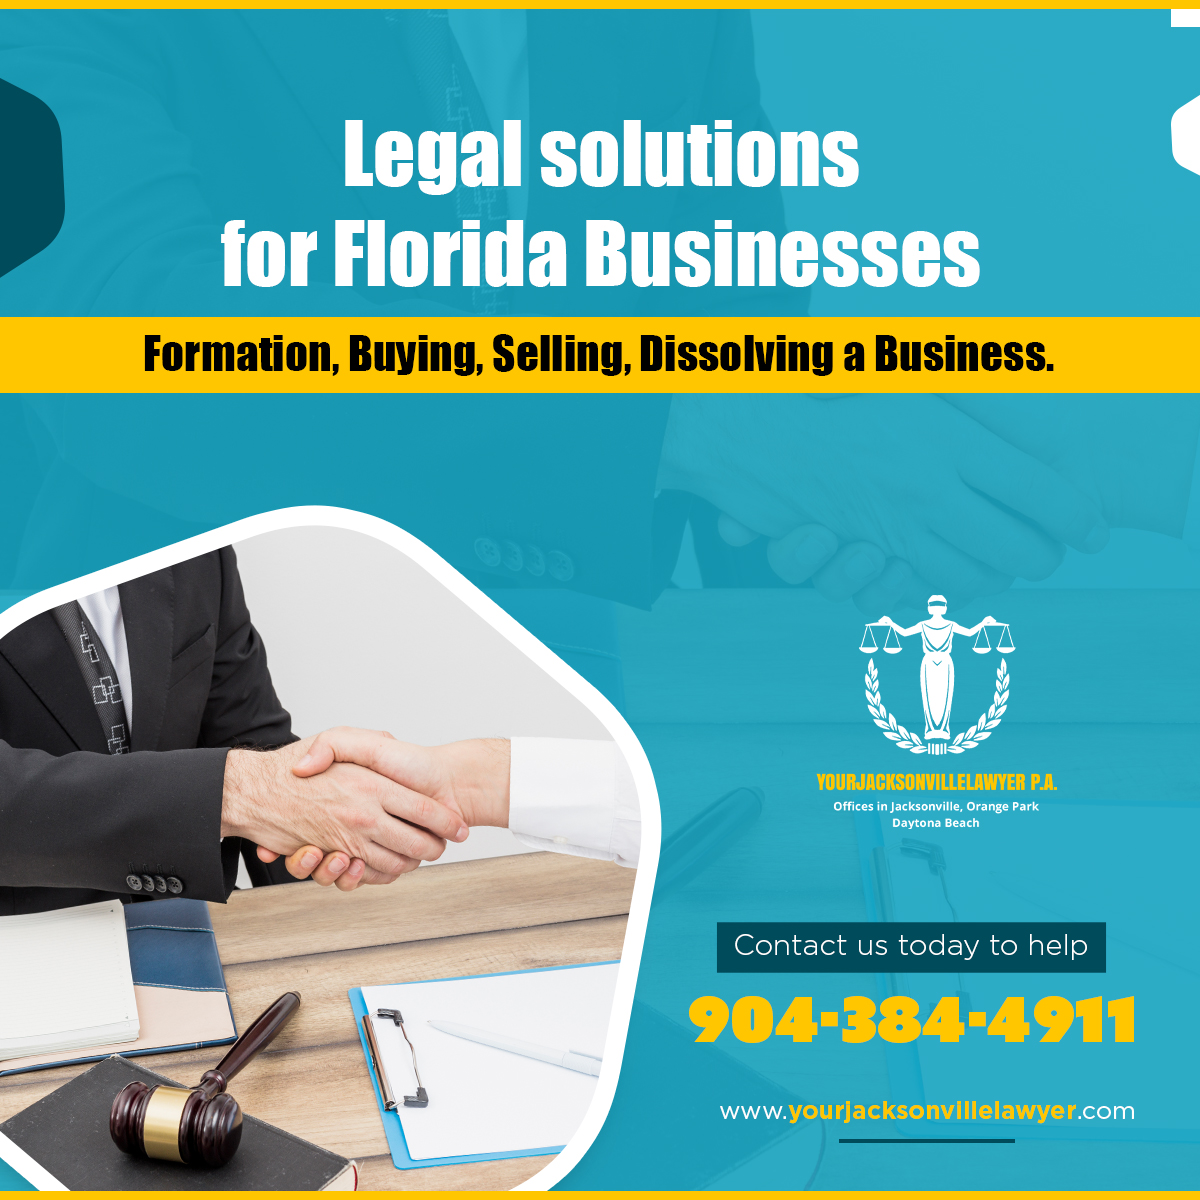 348520237_legalsolutionfloridabusiness_122_376lo.jpg